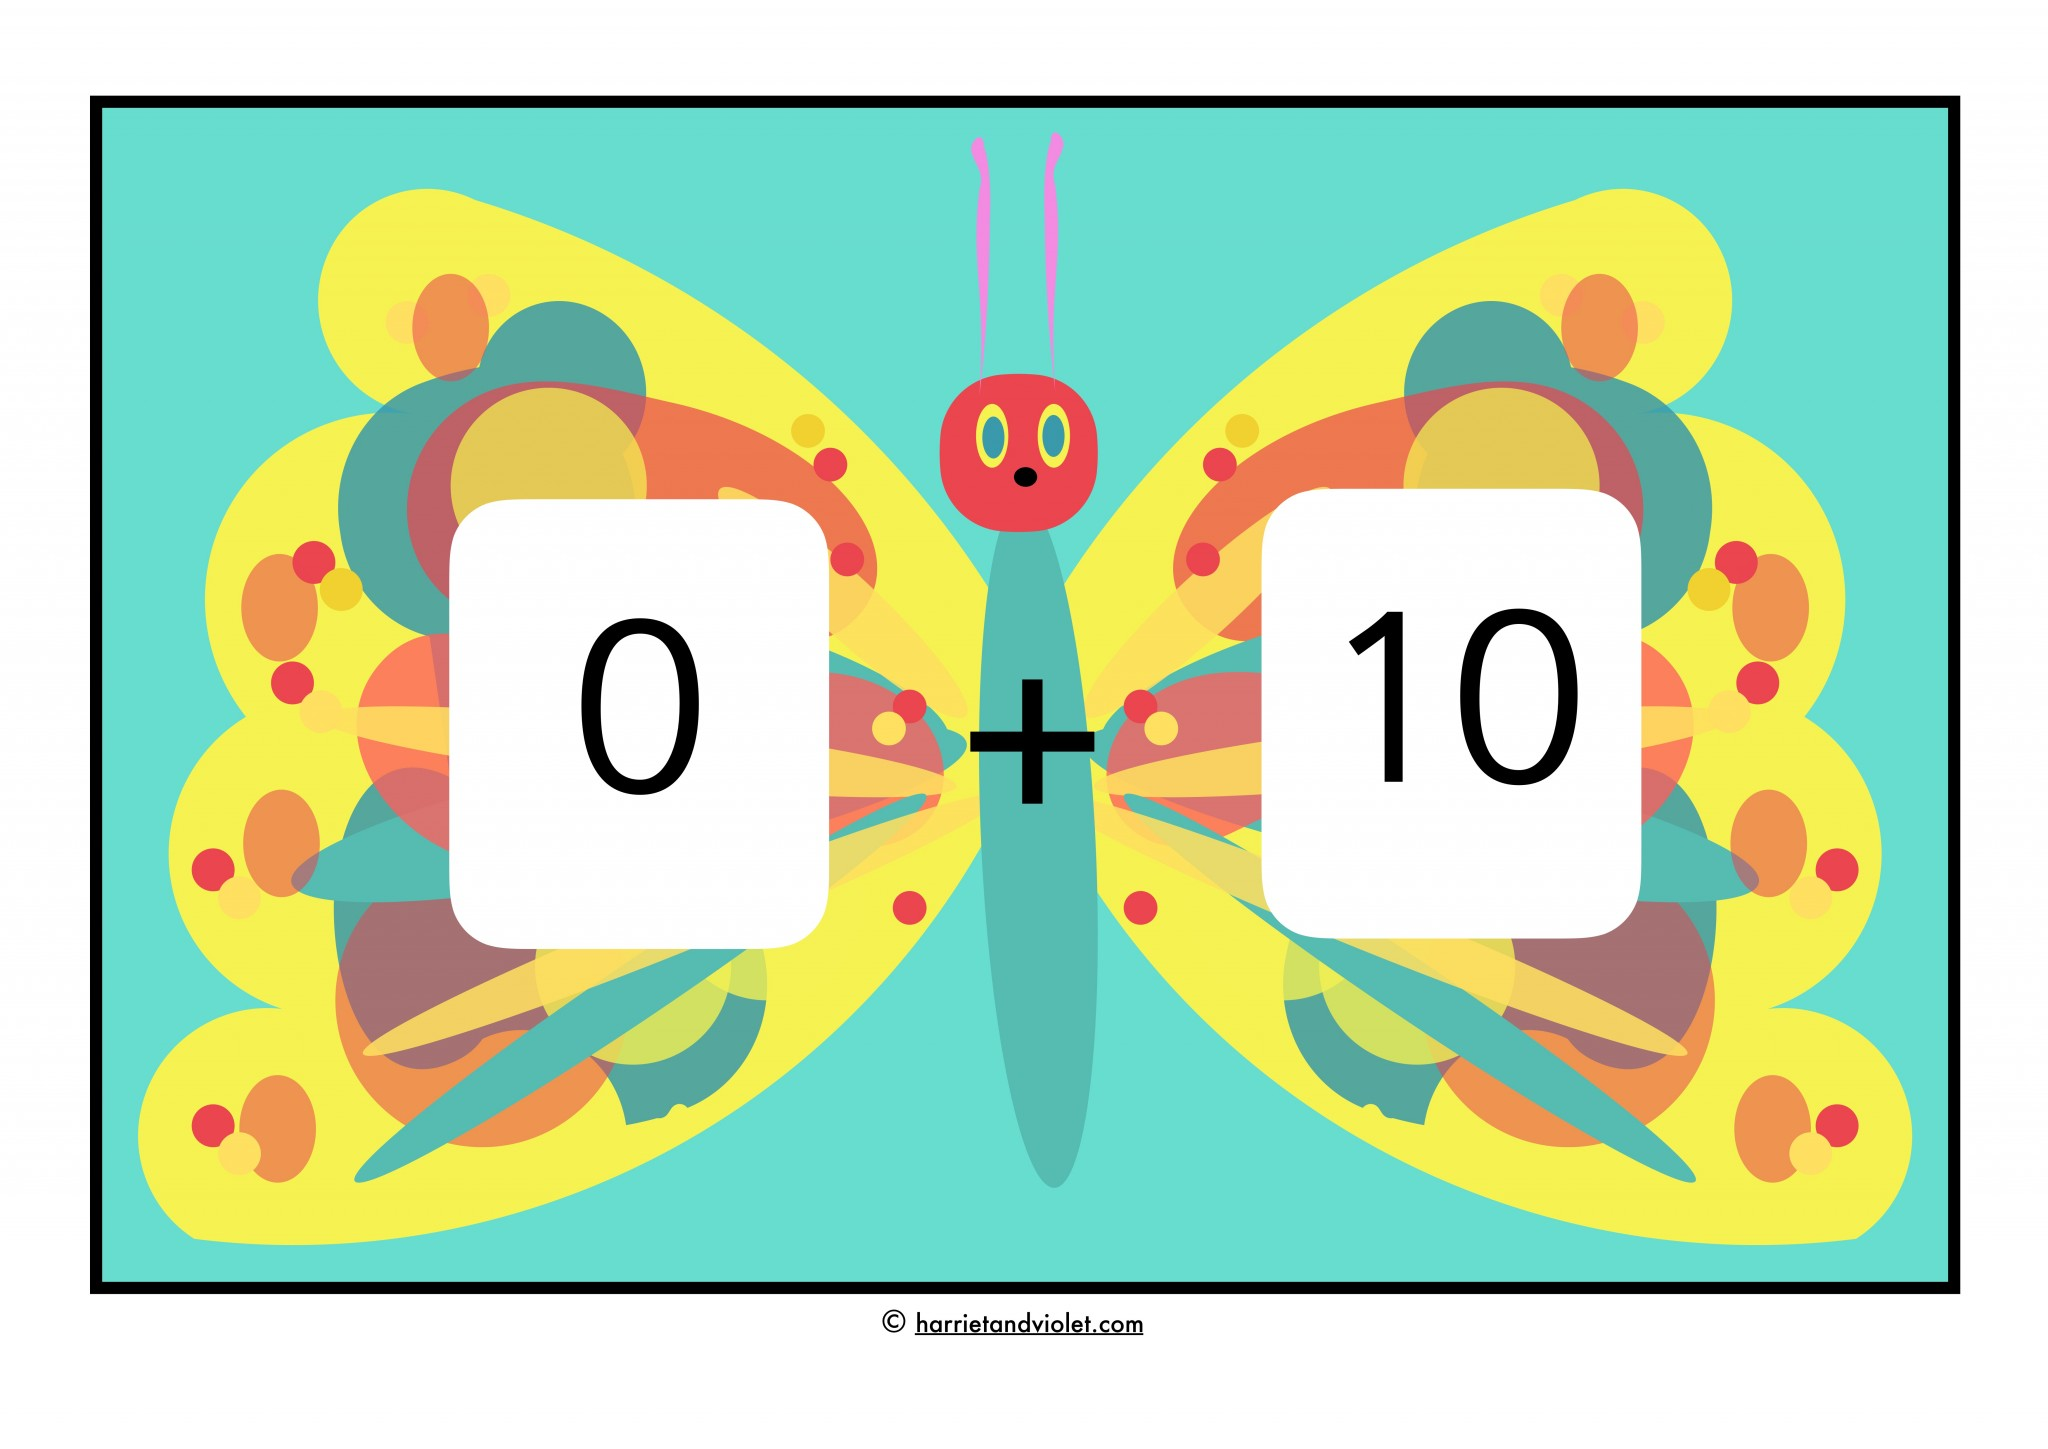 worksheet Number Bonds To 10 number bonds 0 10 the very hungry caterpillar style free teaching resources harriet violet